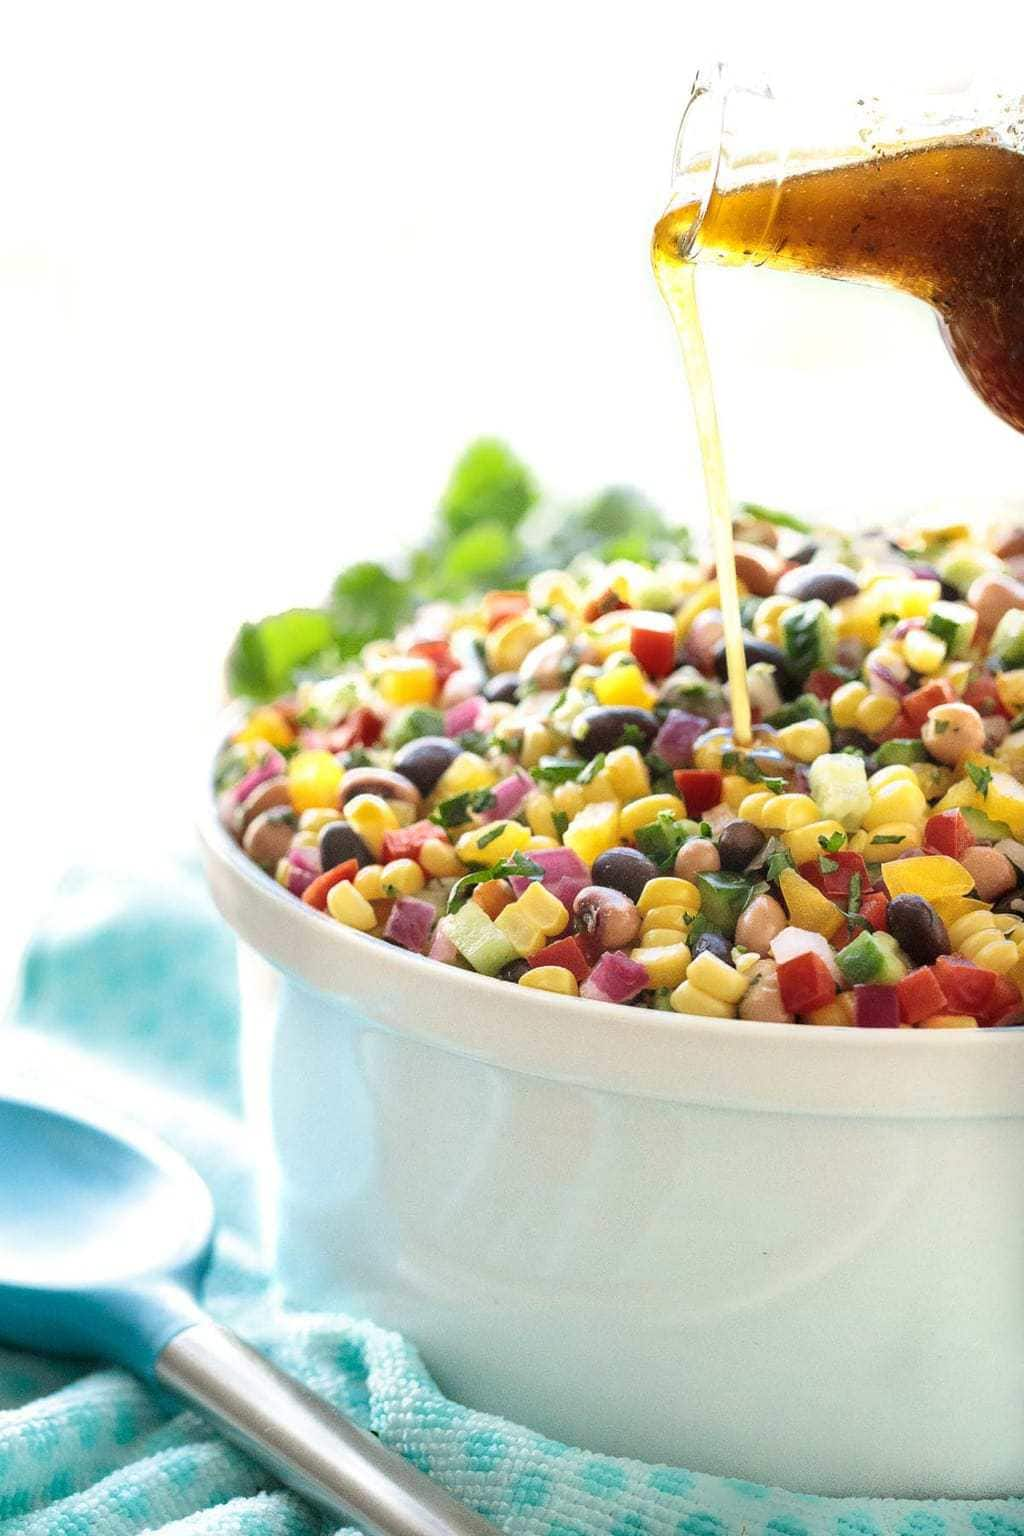 Vertical photo of Mexican Corn and Bean Salad in a white bowl with dressing being poured on top. The bowl is resting on a turquoise patterned cloth.